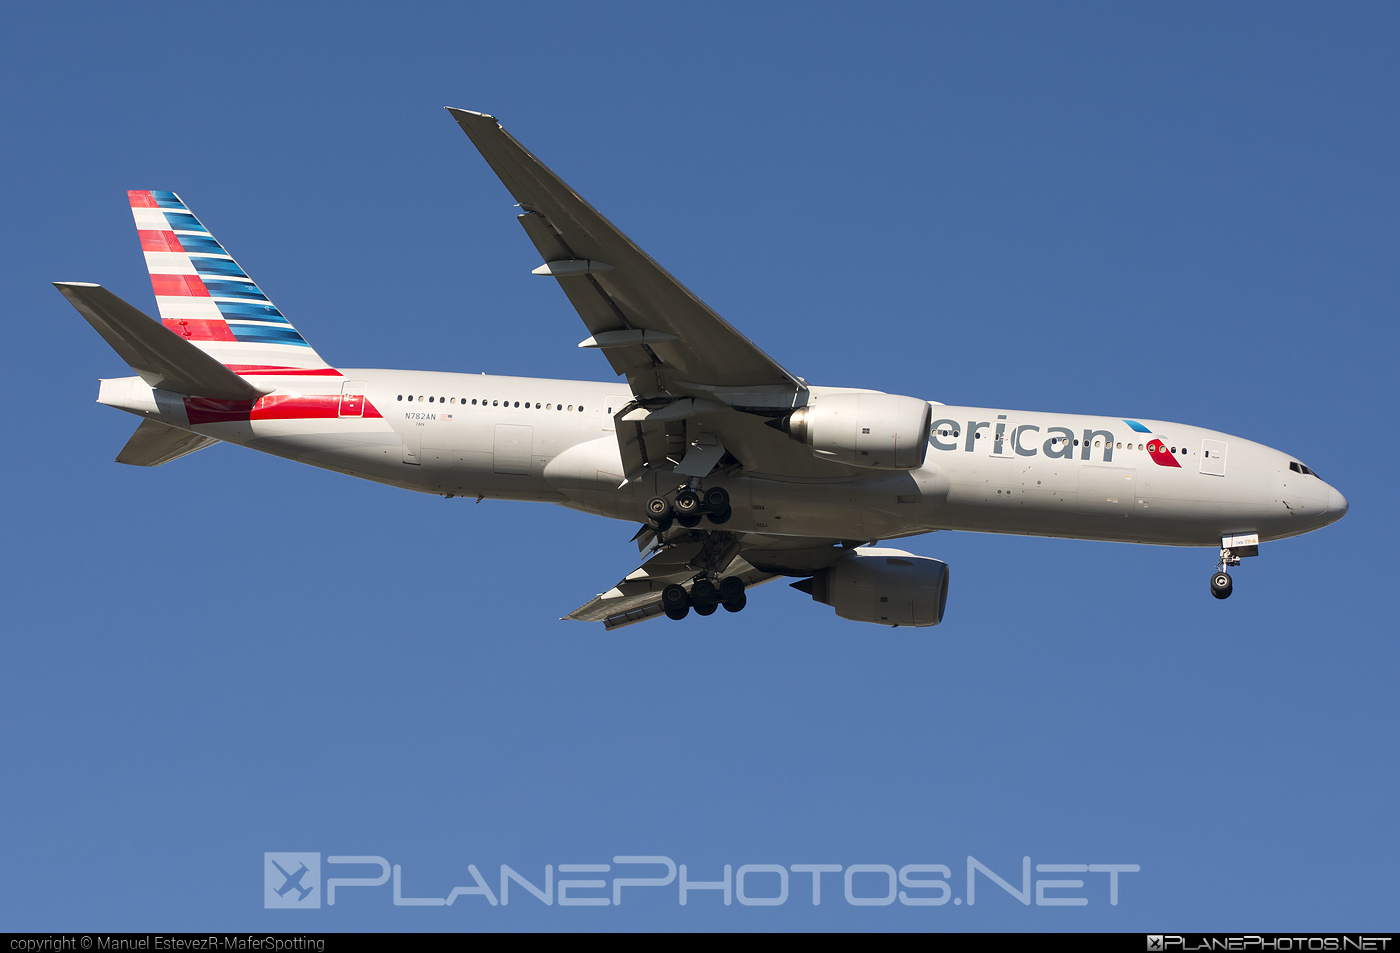 American Airlines Boeing 777-200ER - N782AN #americanairlines #b777 #b777er #boeing #boeing777 #tripleseven